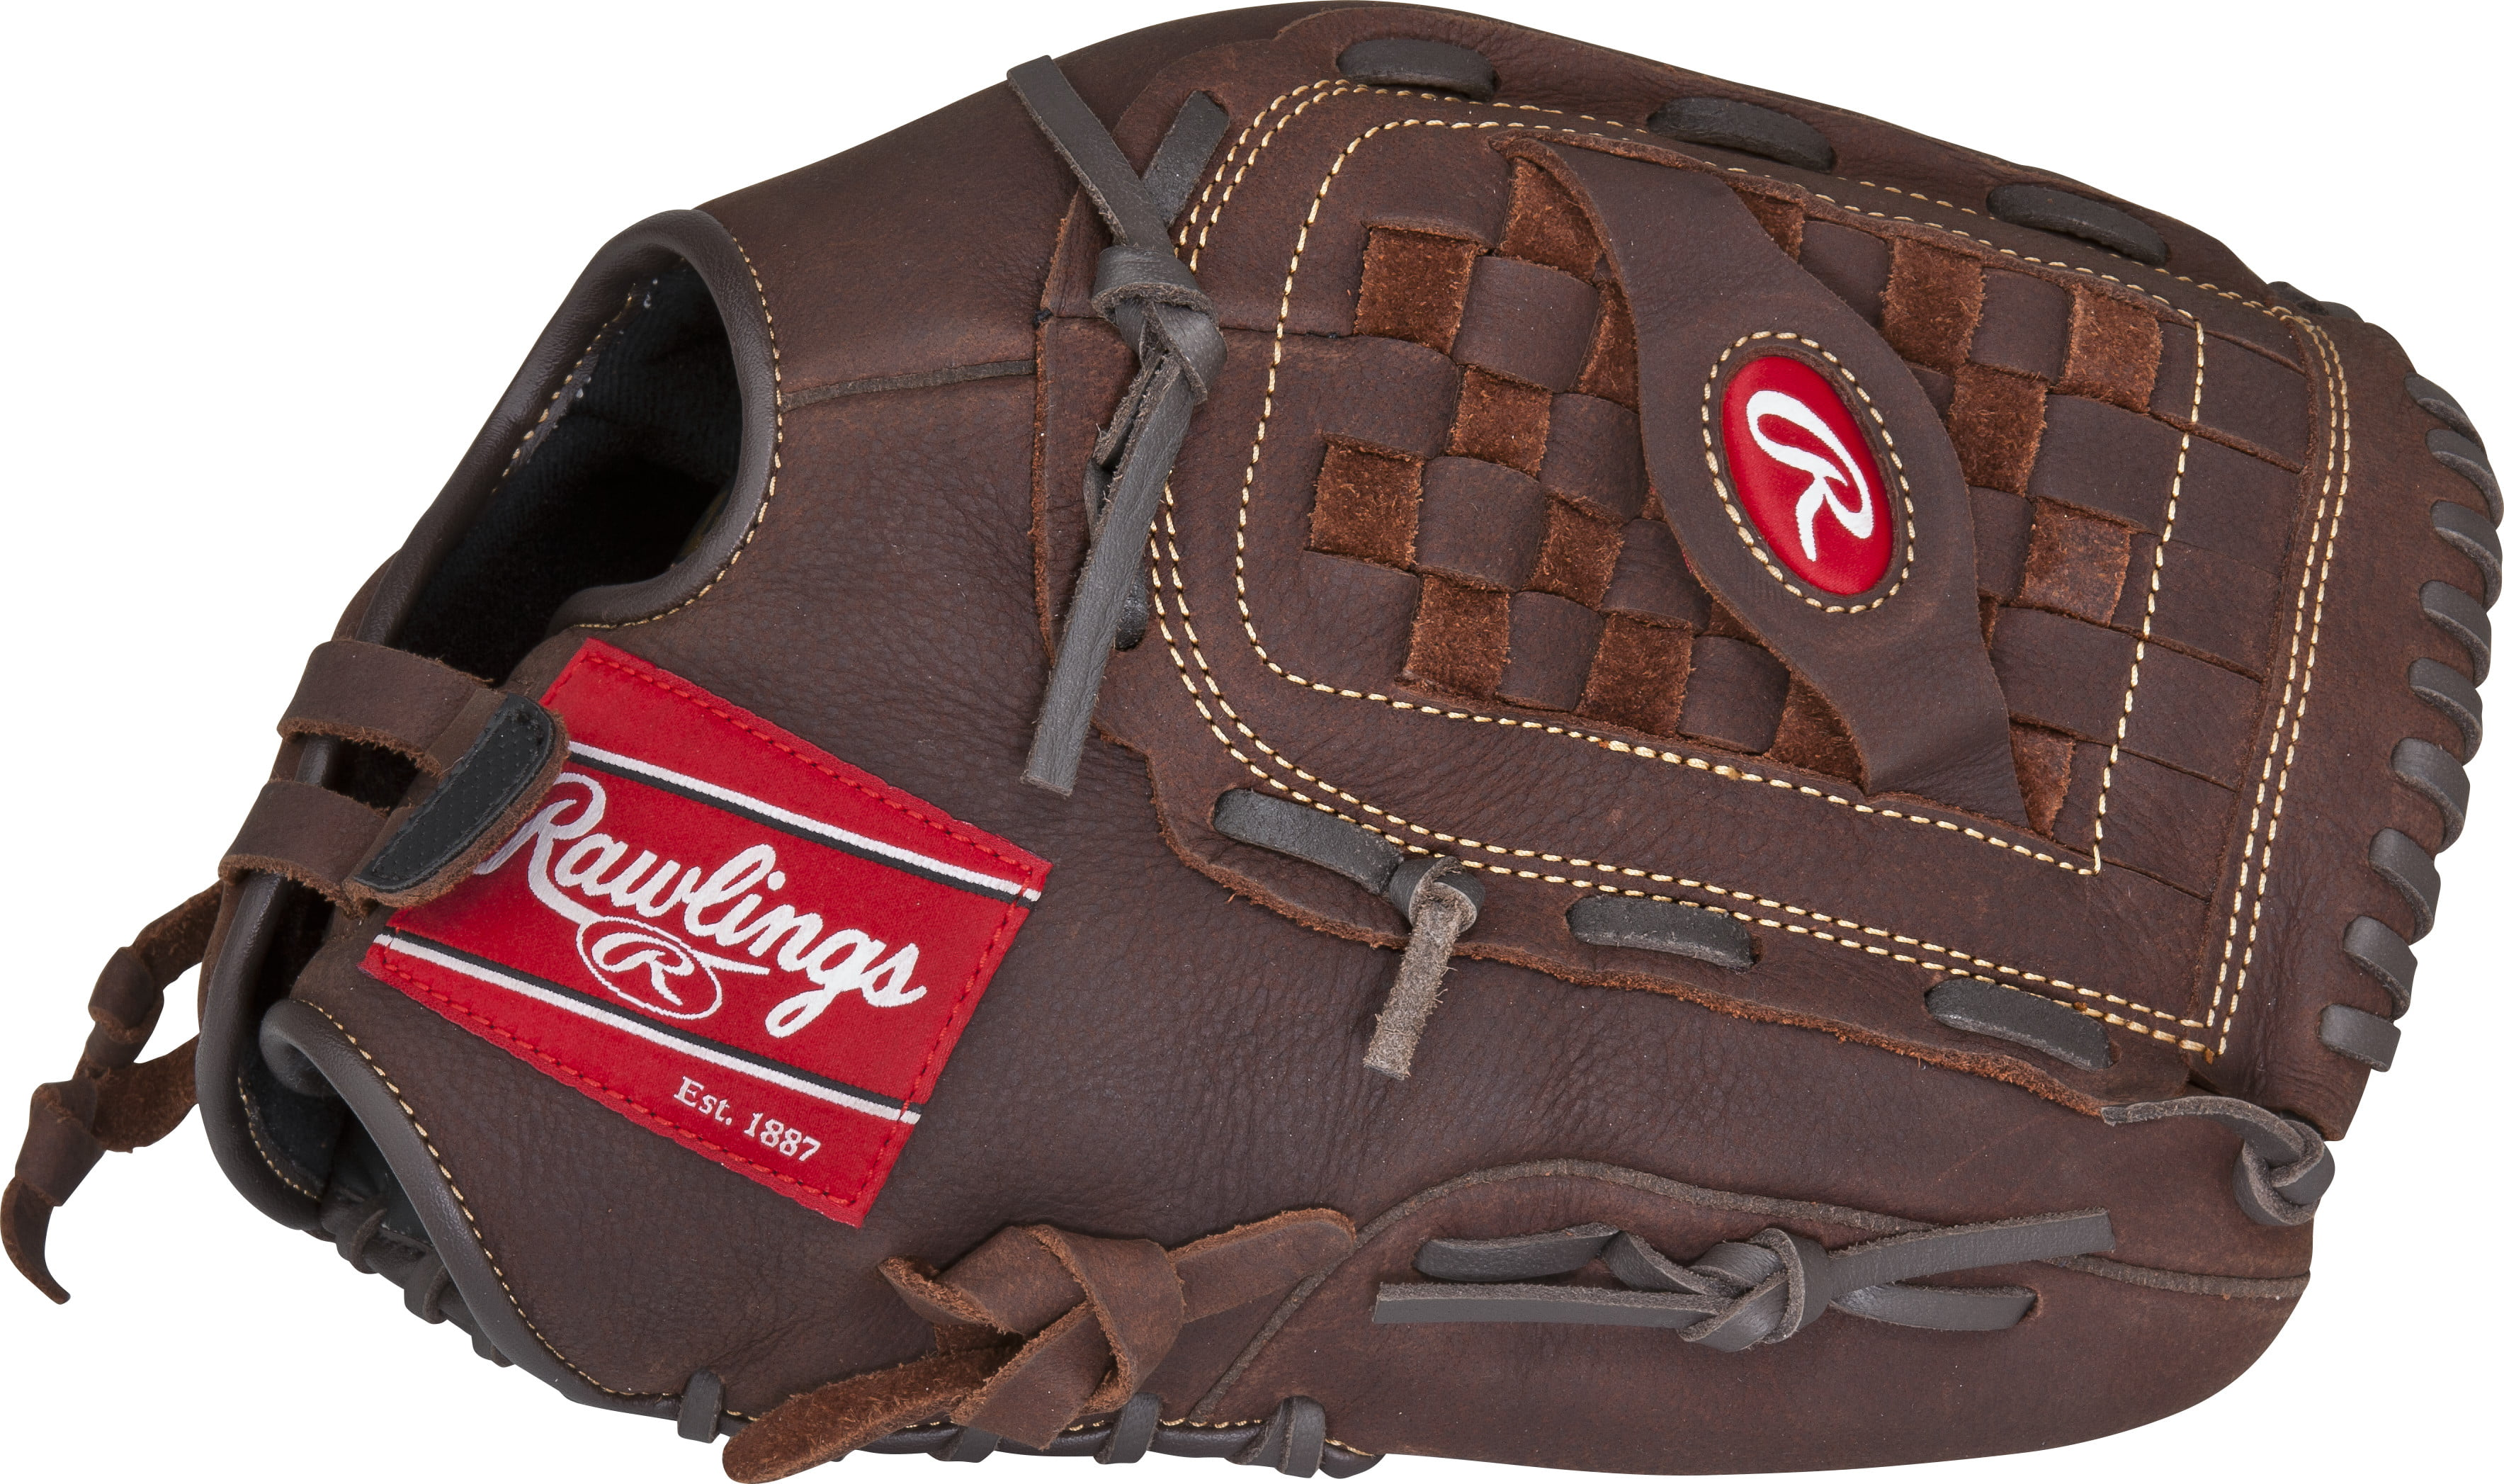 Rawlings Player Preferred Adult Series Baseball Glove by Rawlings